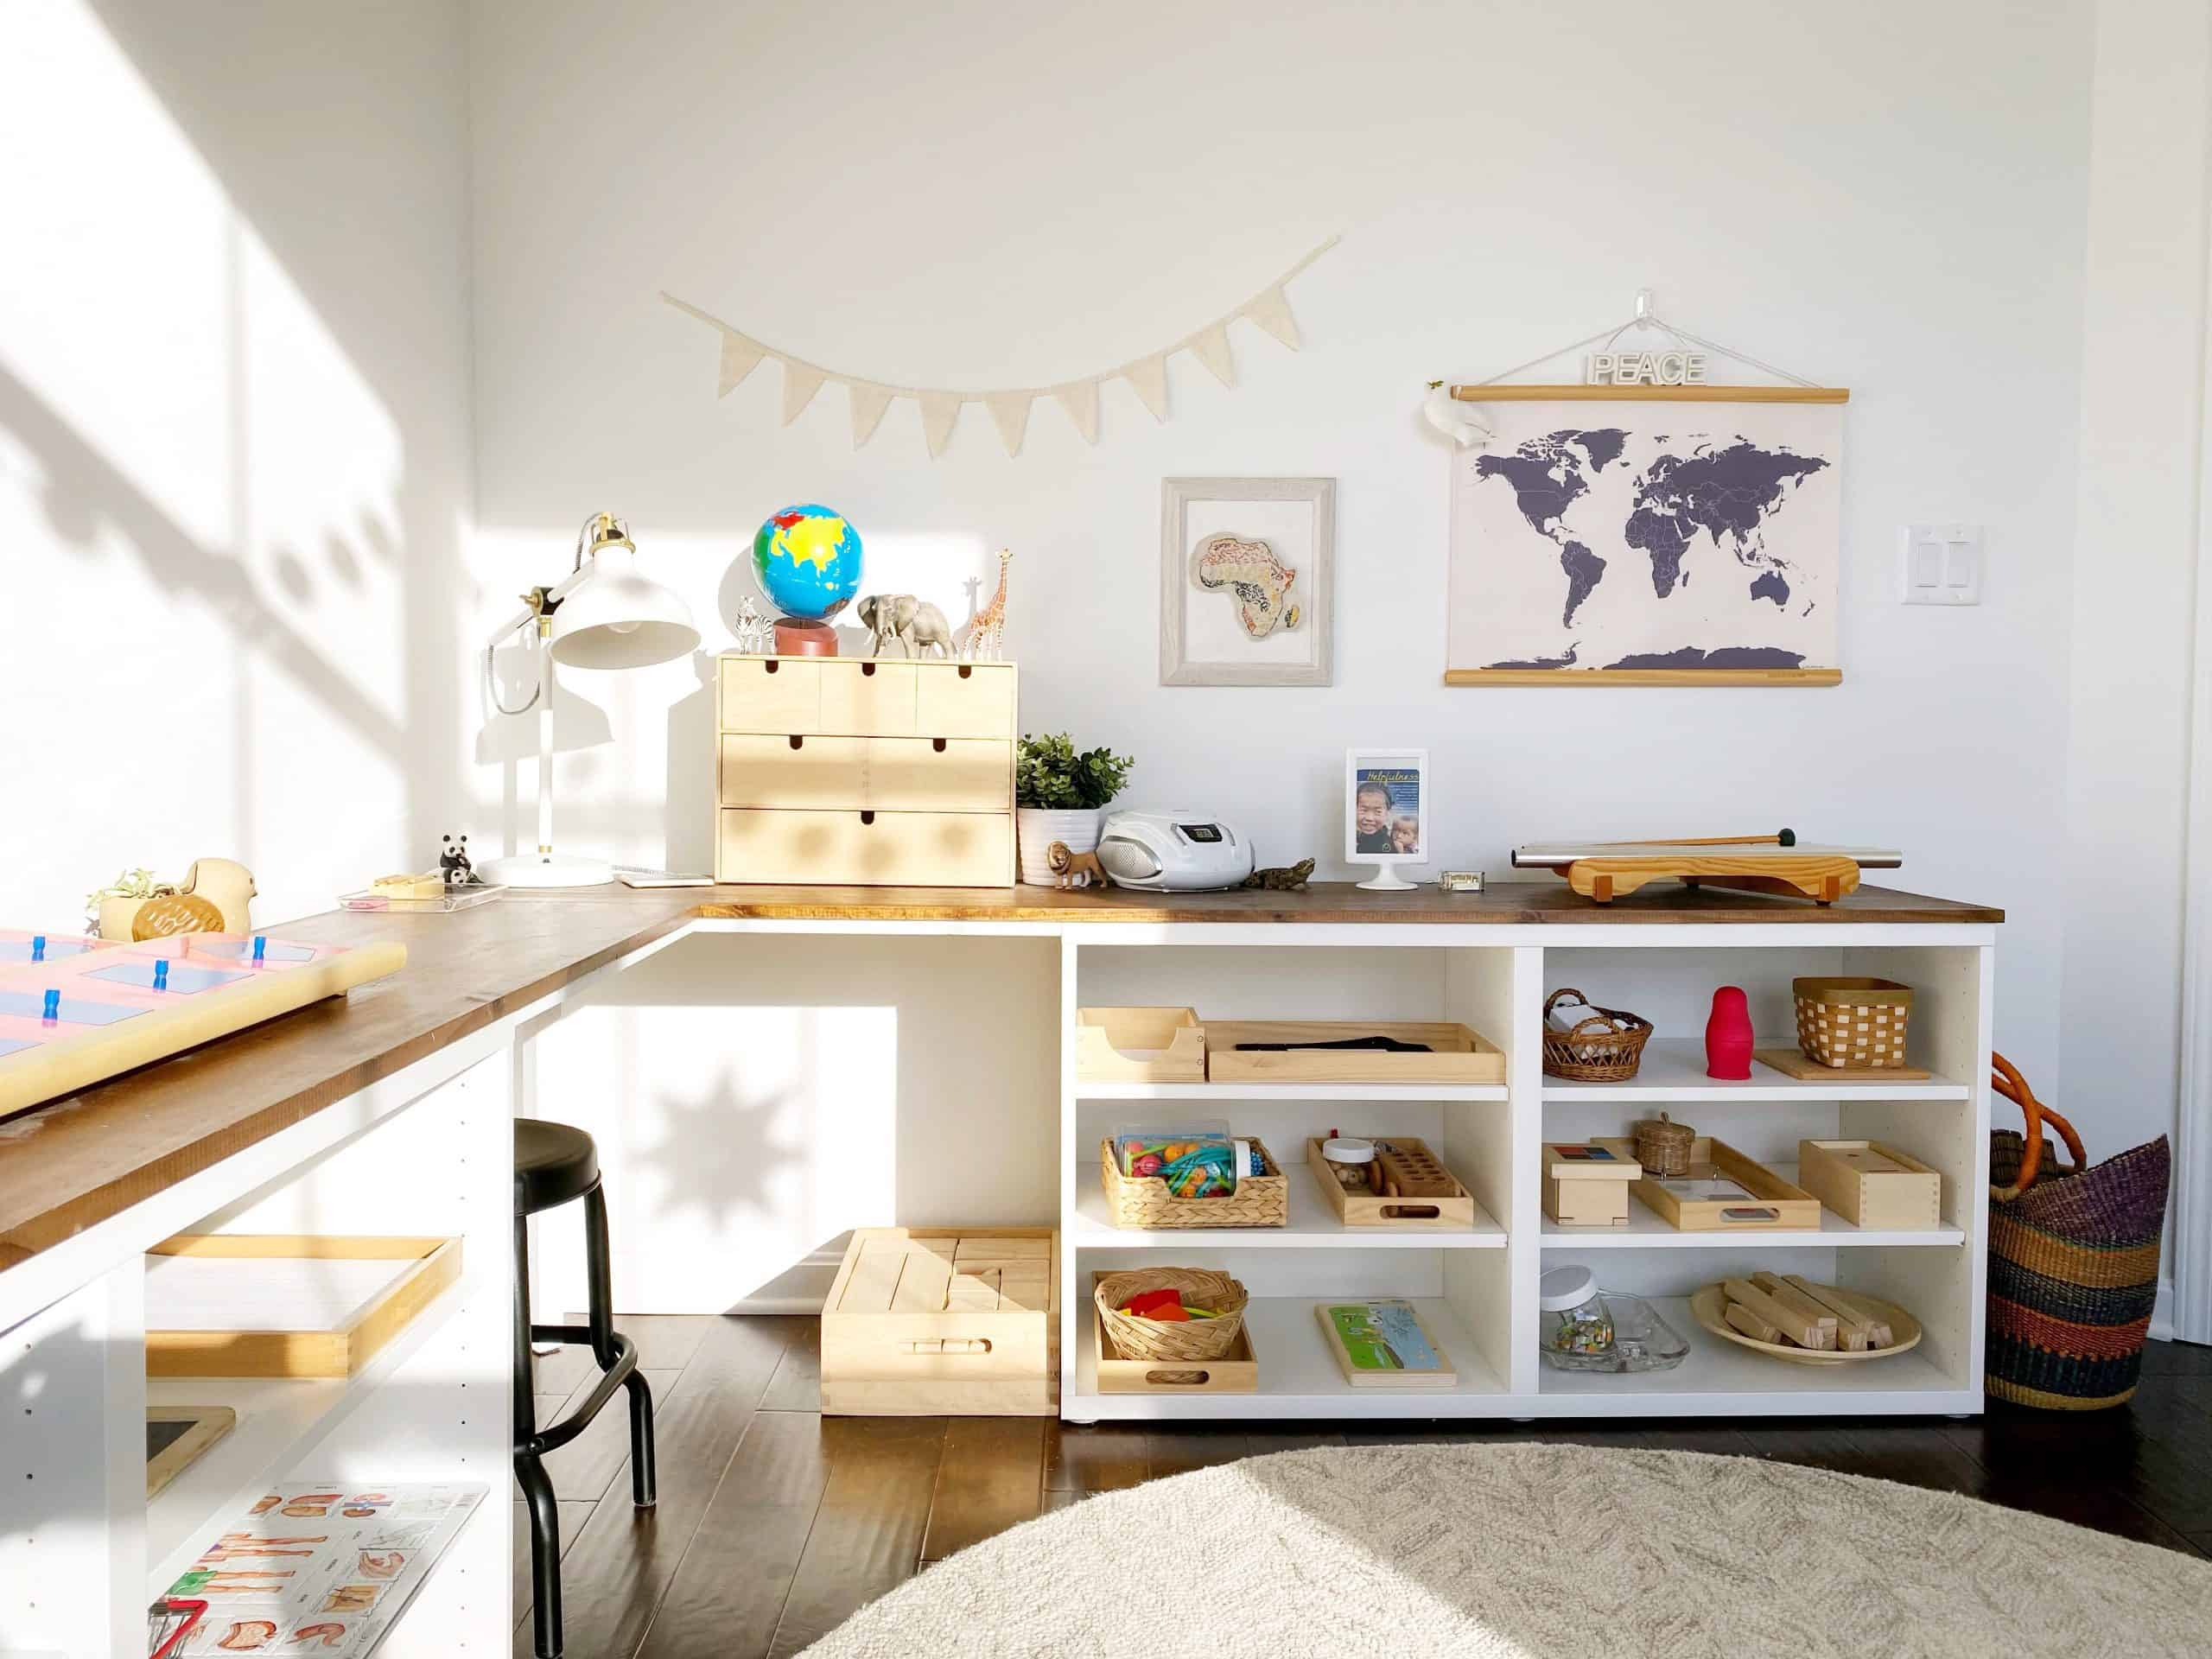 Home Tour: Our Montessori-Inspired Schoolroom and Playroom + A Free Guide to Designing Spaces for Children